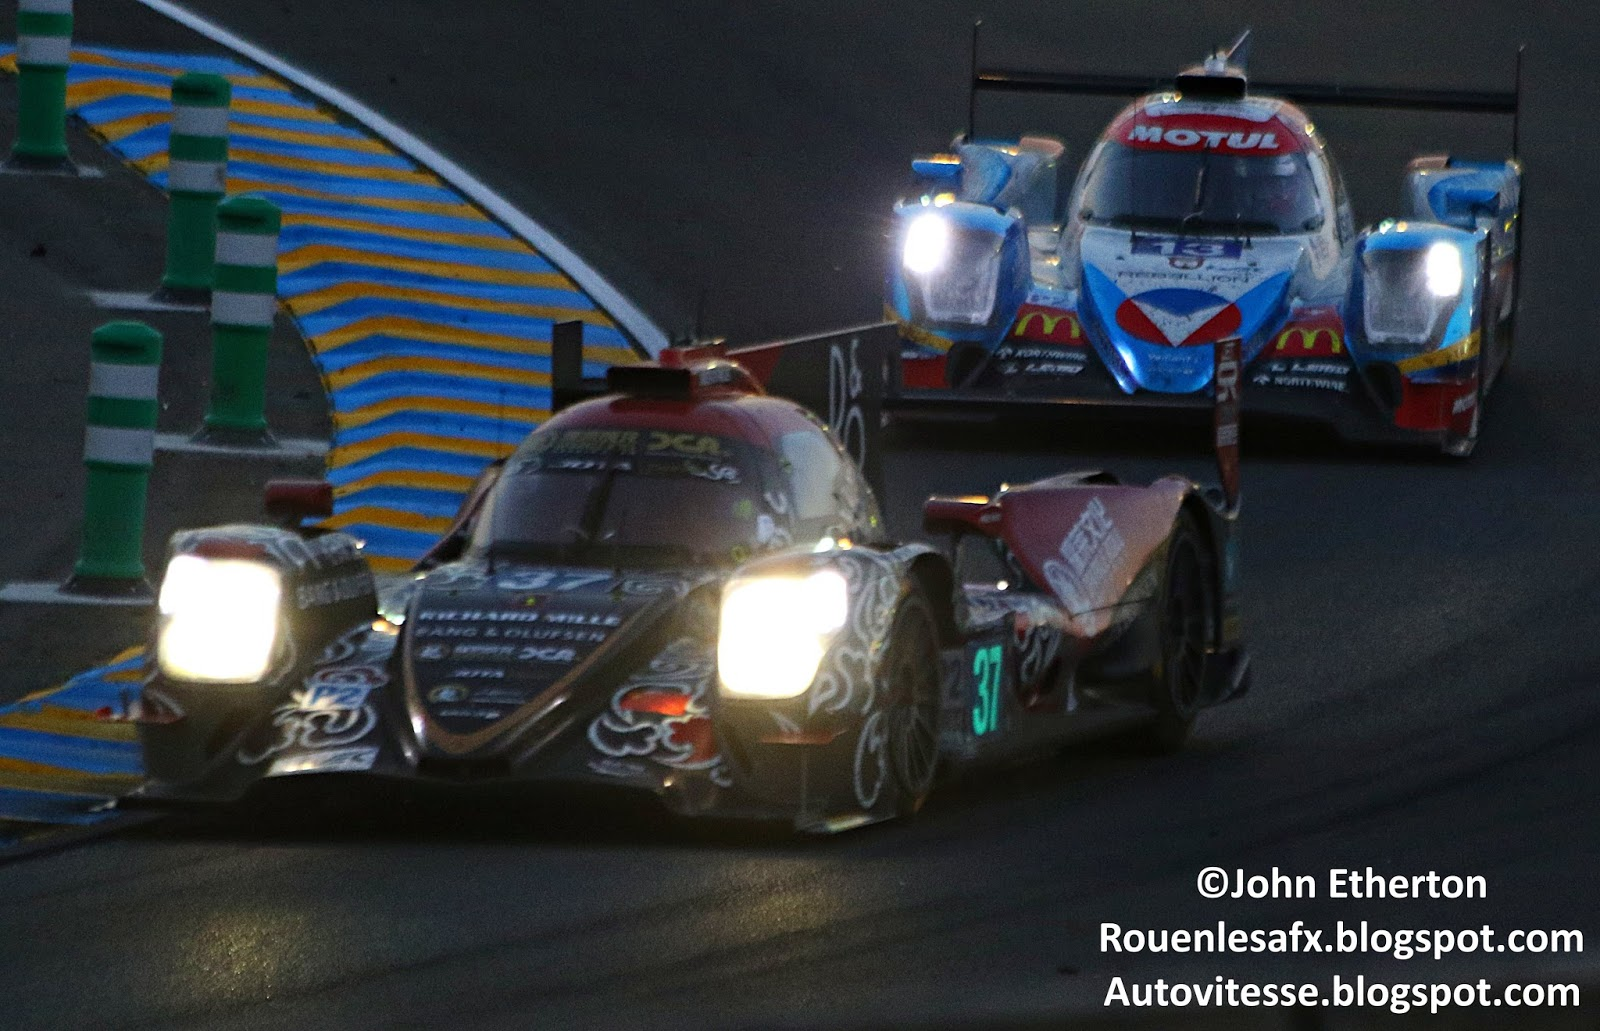 The second jackie chan car leads another lmp2 car through the esses on saturday night